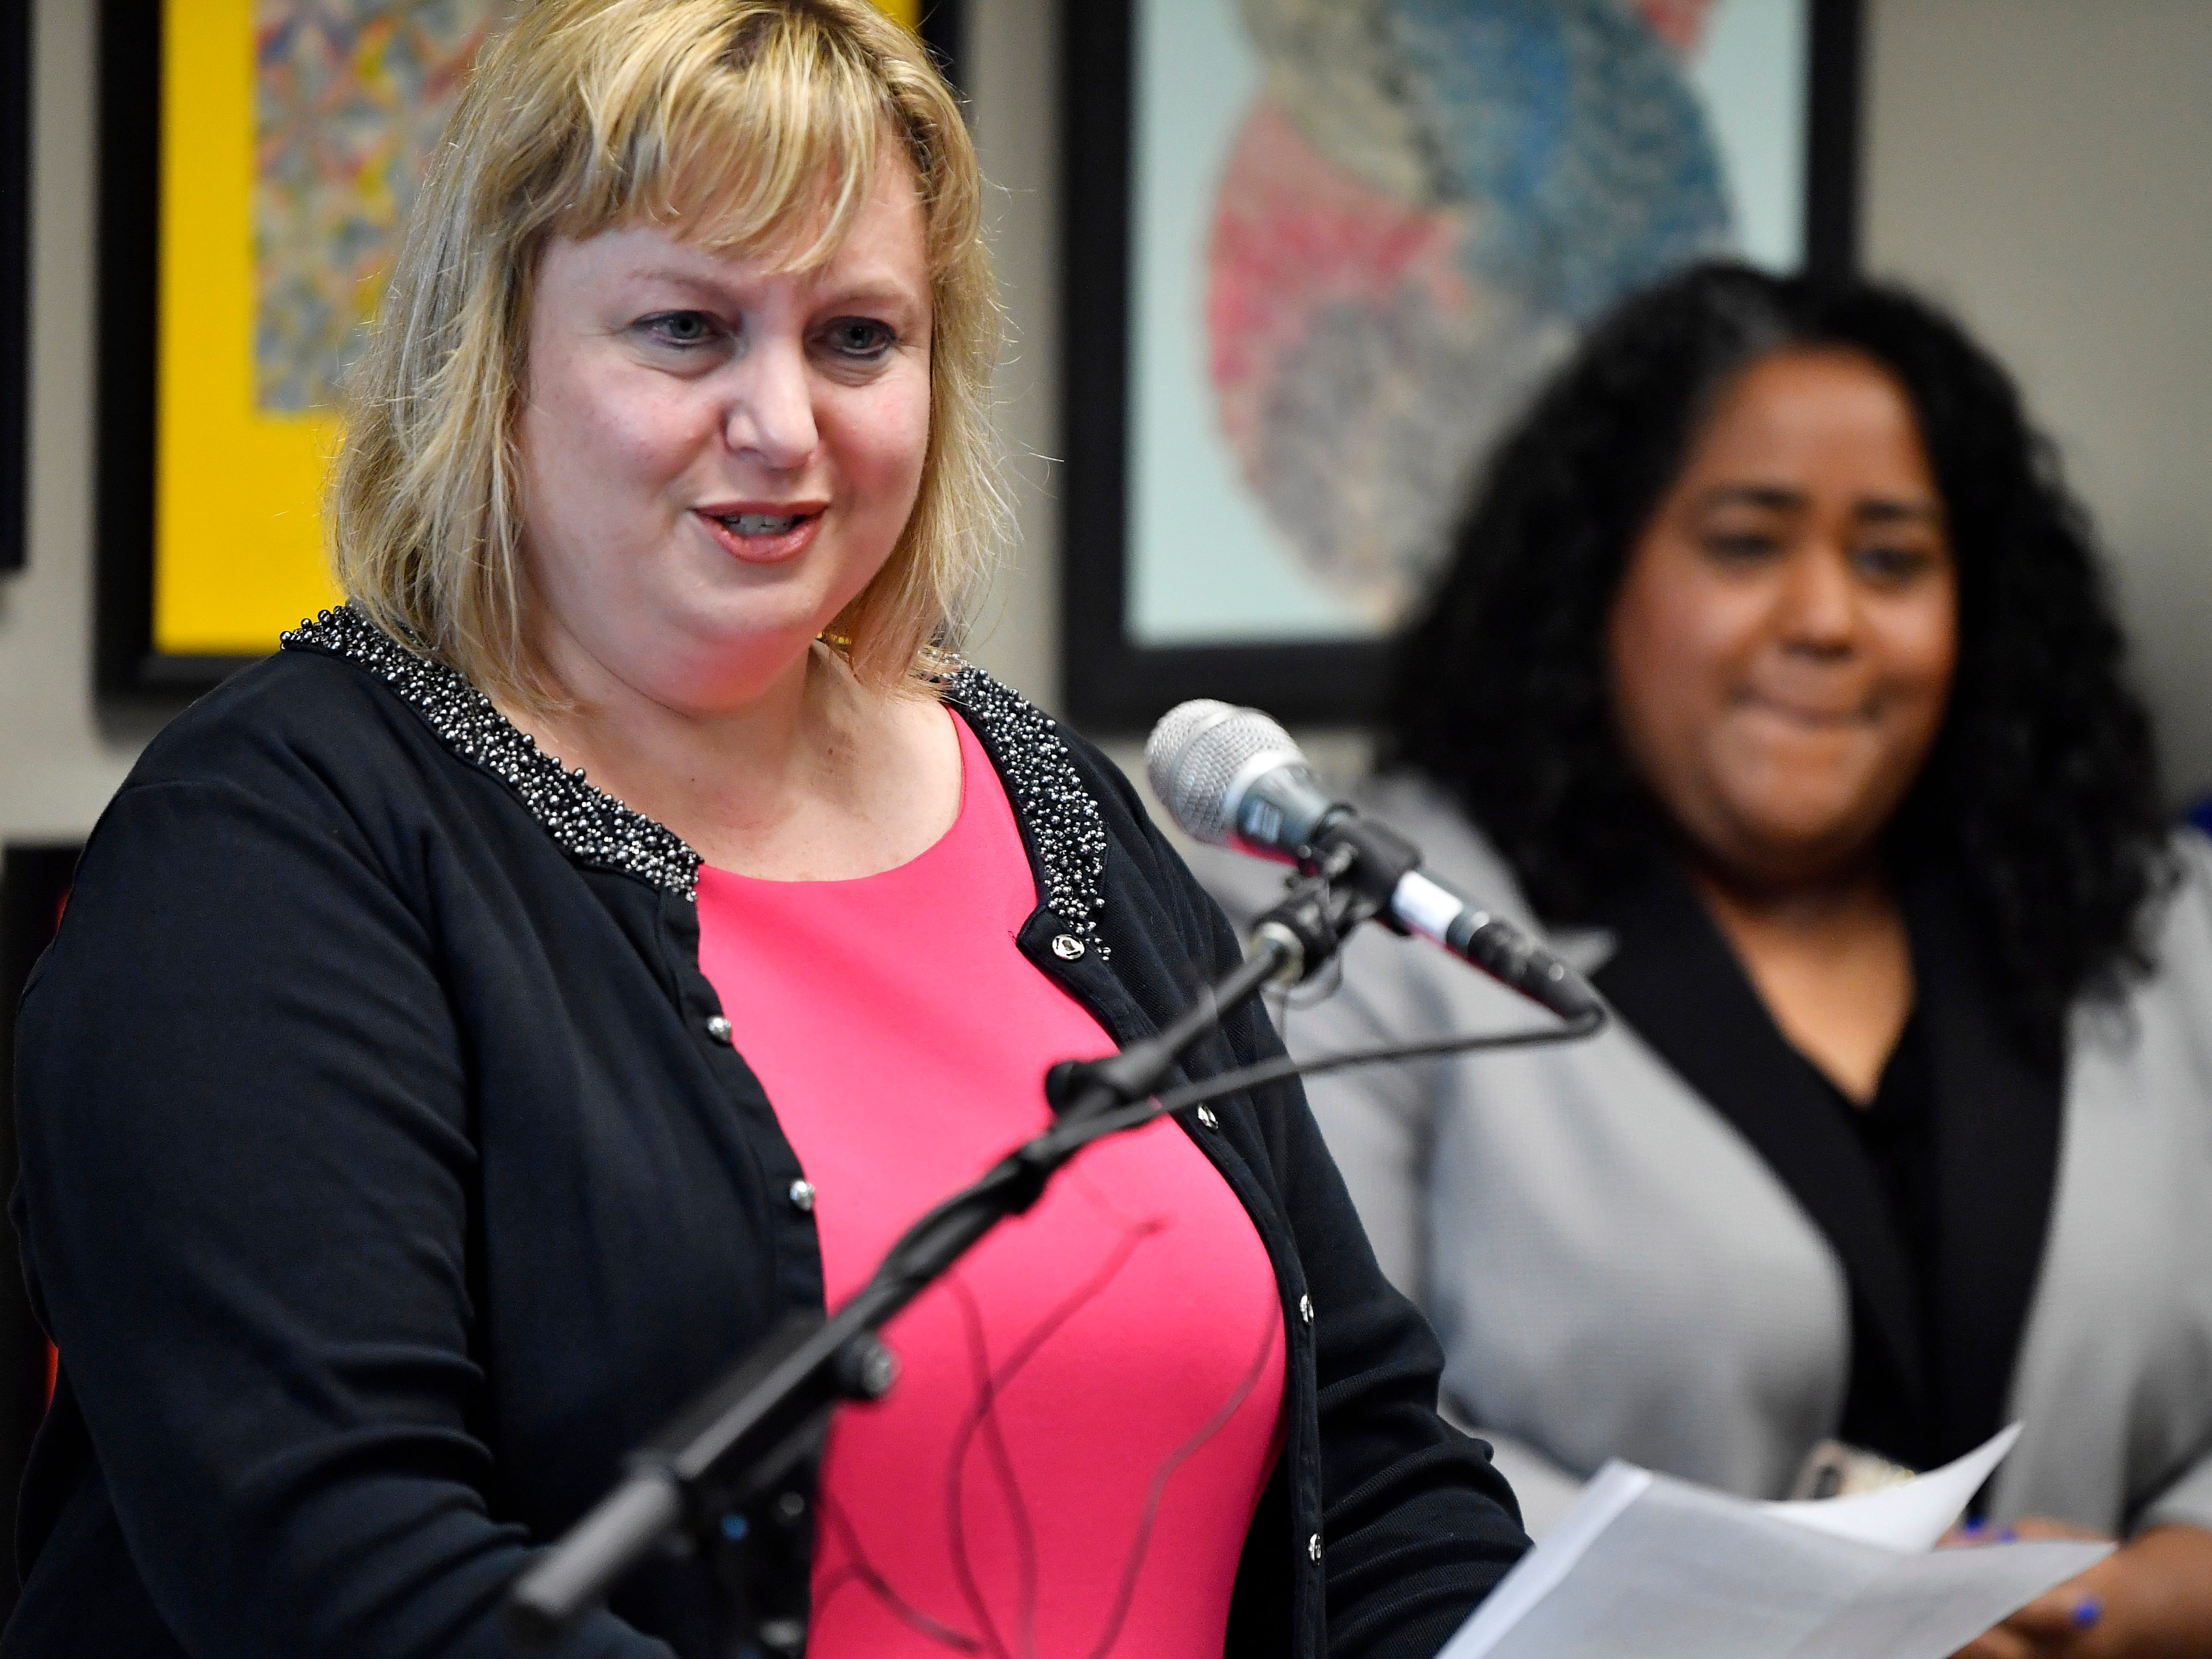 Davidson County Juvenile Court Administrator Kathy Sinback reads a statement from Cyntoia Brown at a news conference Jan. 7, 2019, in Nashville after Gov. Bill Haslam granted full clemency to Brown. Sinback was Brown's first public defender and became her friend.